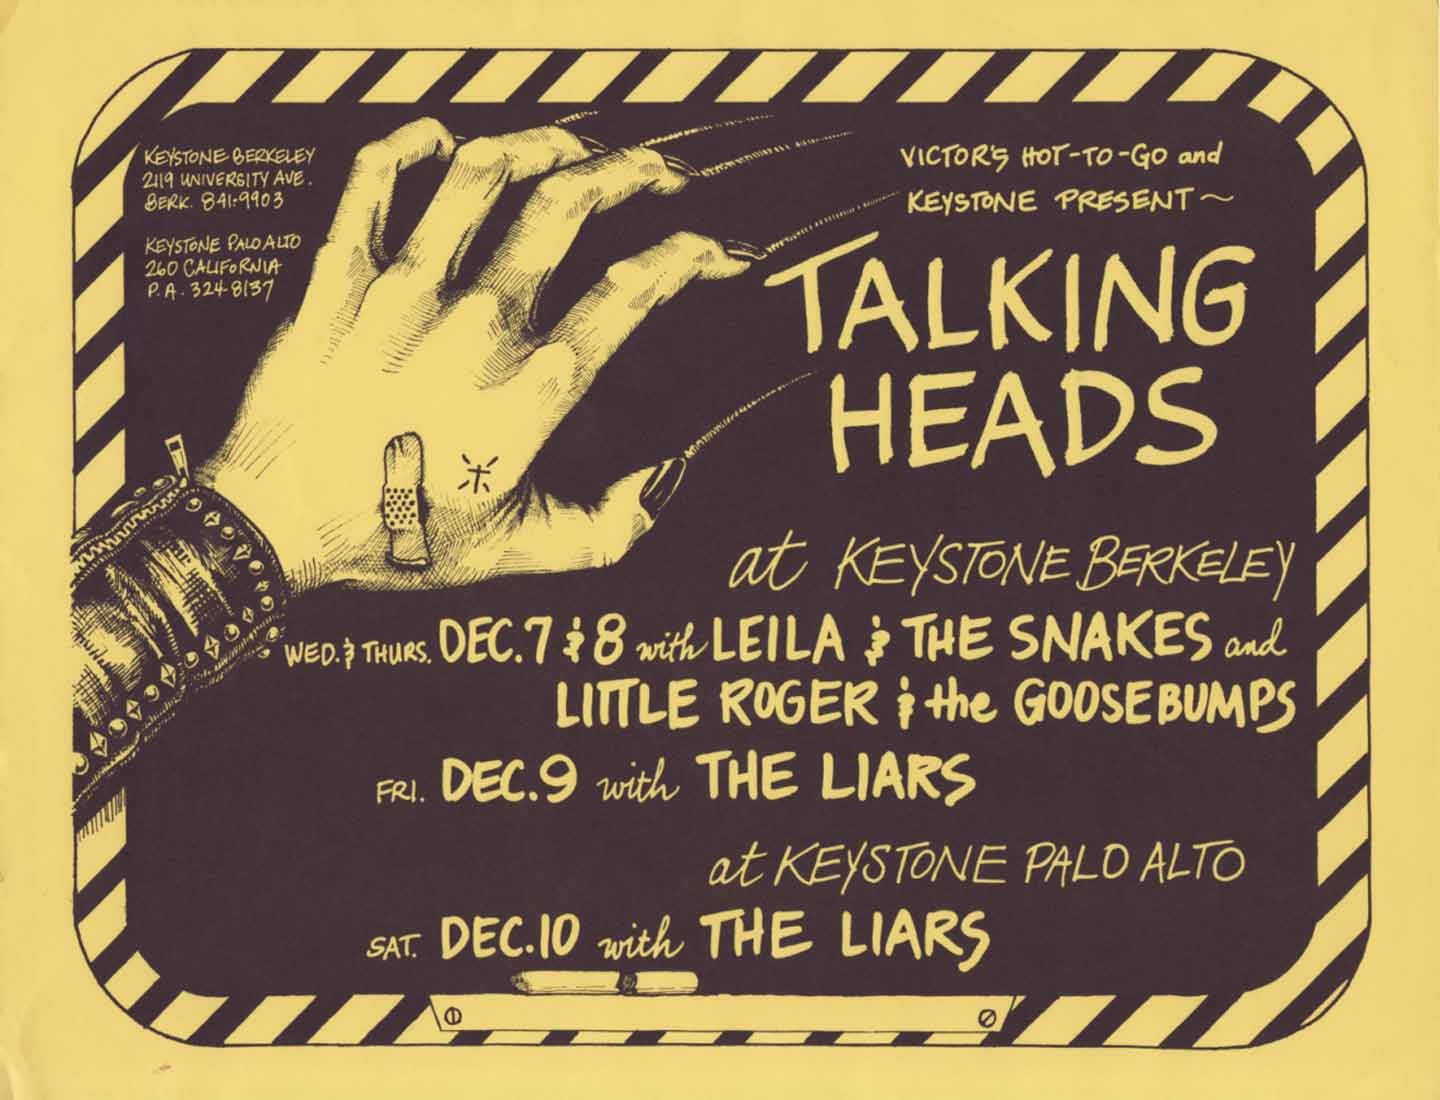 The Talking Heads First National Tour Hit the Keystone Berkeley